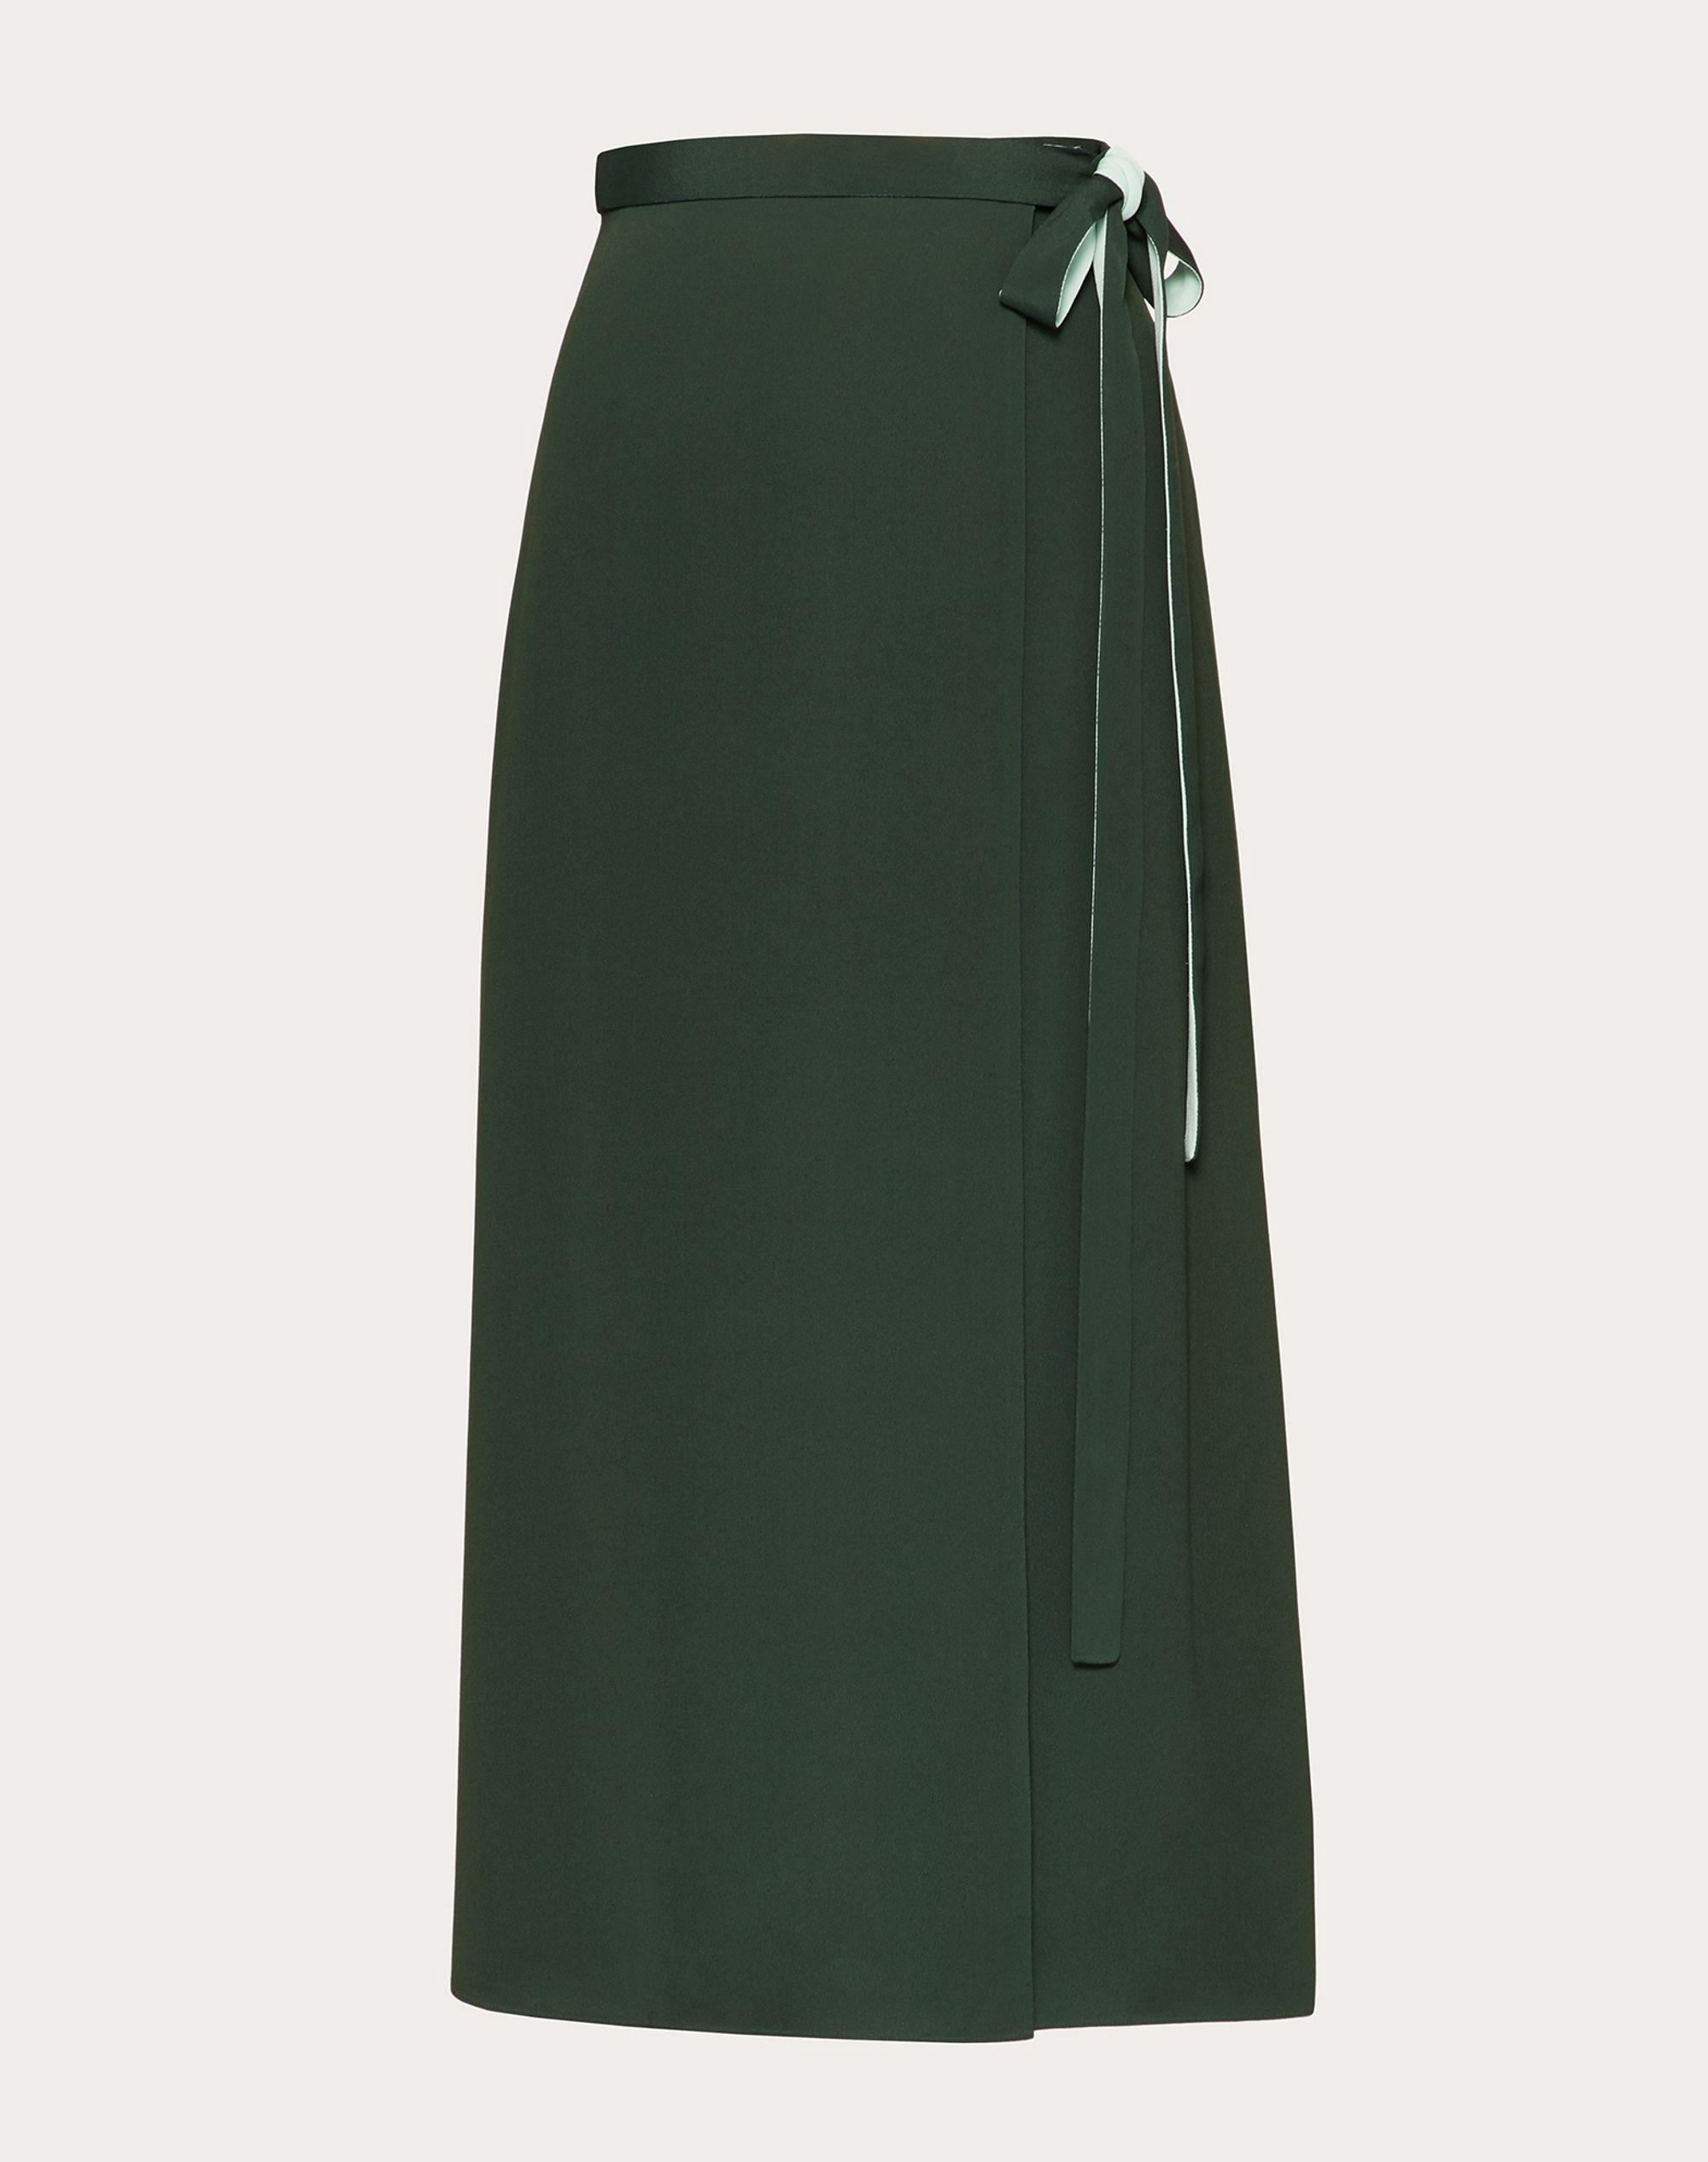 CADY COUTURE WRAP SKIRT 3